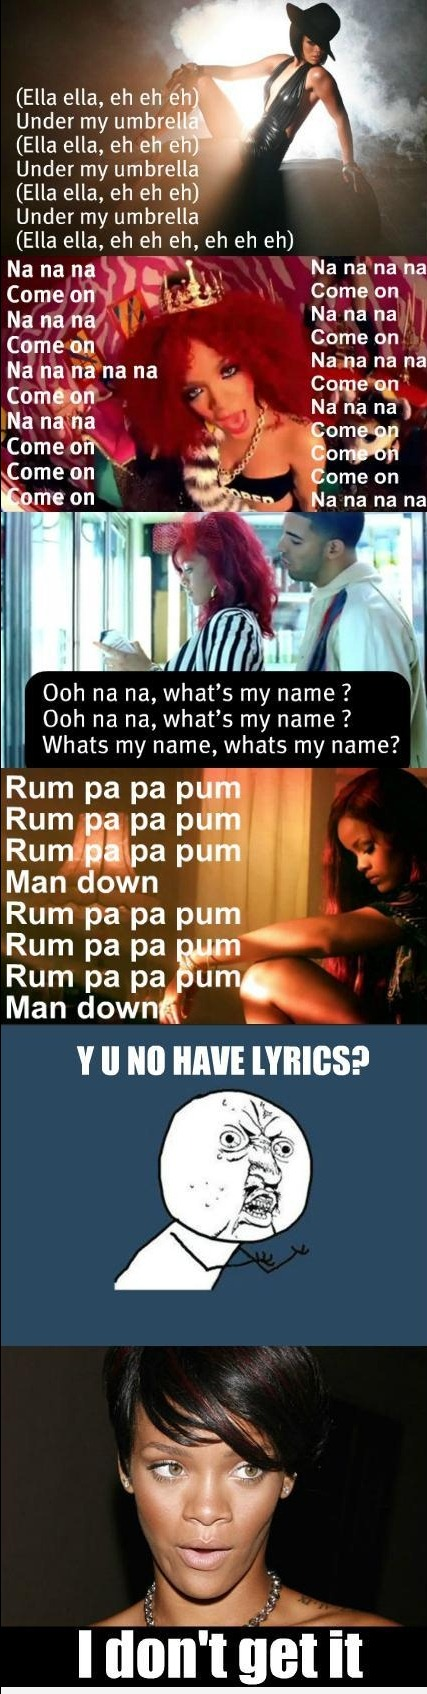 Lyric love rihanna lyrics : Rihanna Lyrics - what a poet! | Haha Funny Funny | Pinterest ...